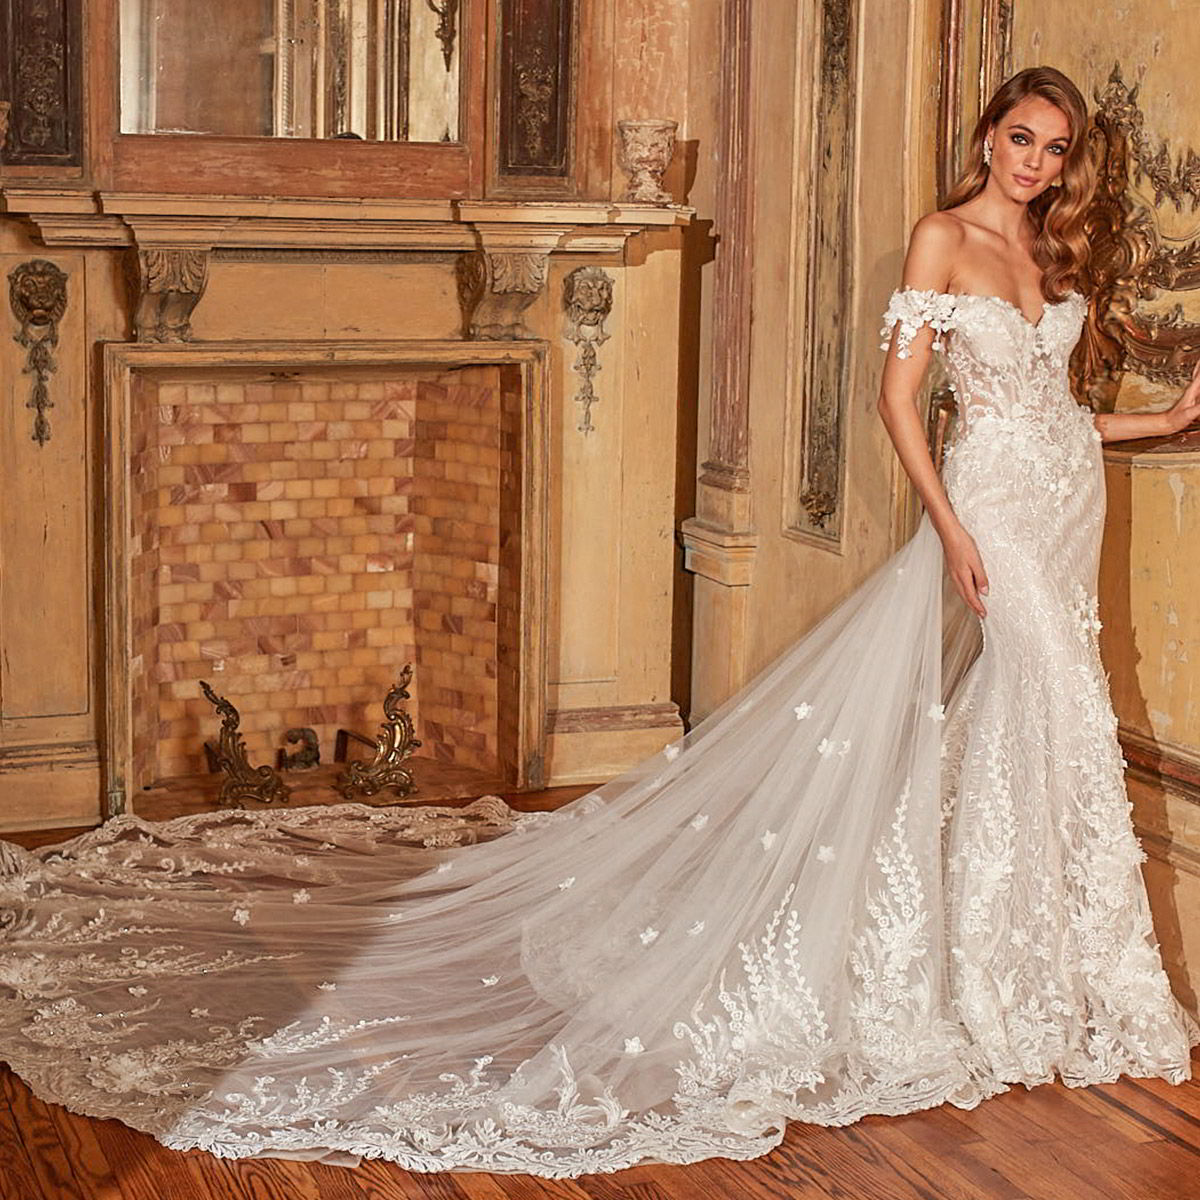 Eve Of Milady Bridal Wedding Dress Collection Fall 2018: Wedding Dresses, Cakes, Bridal